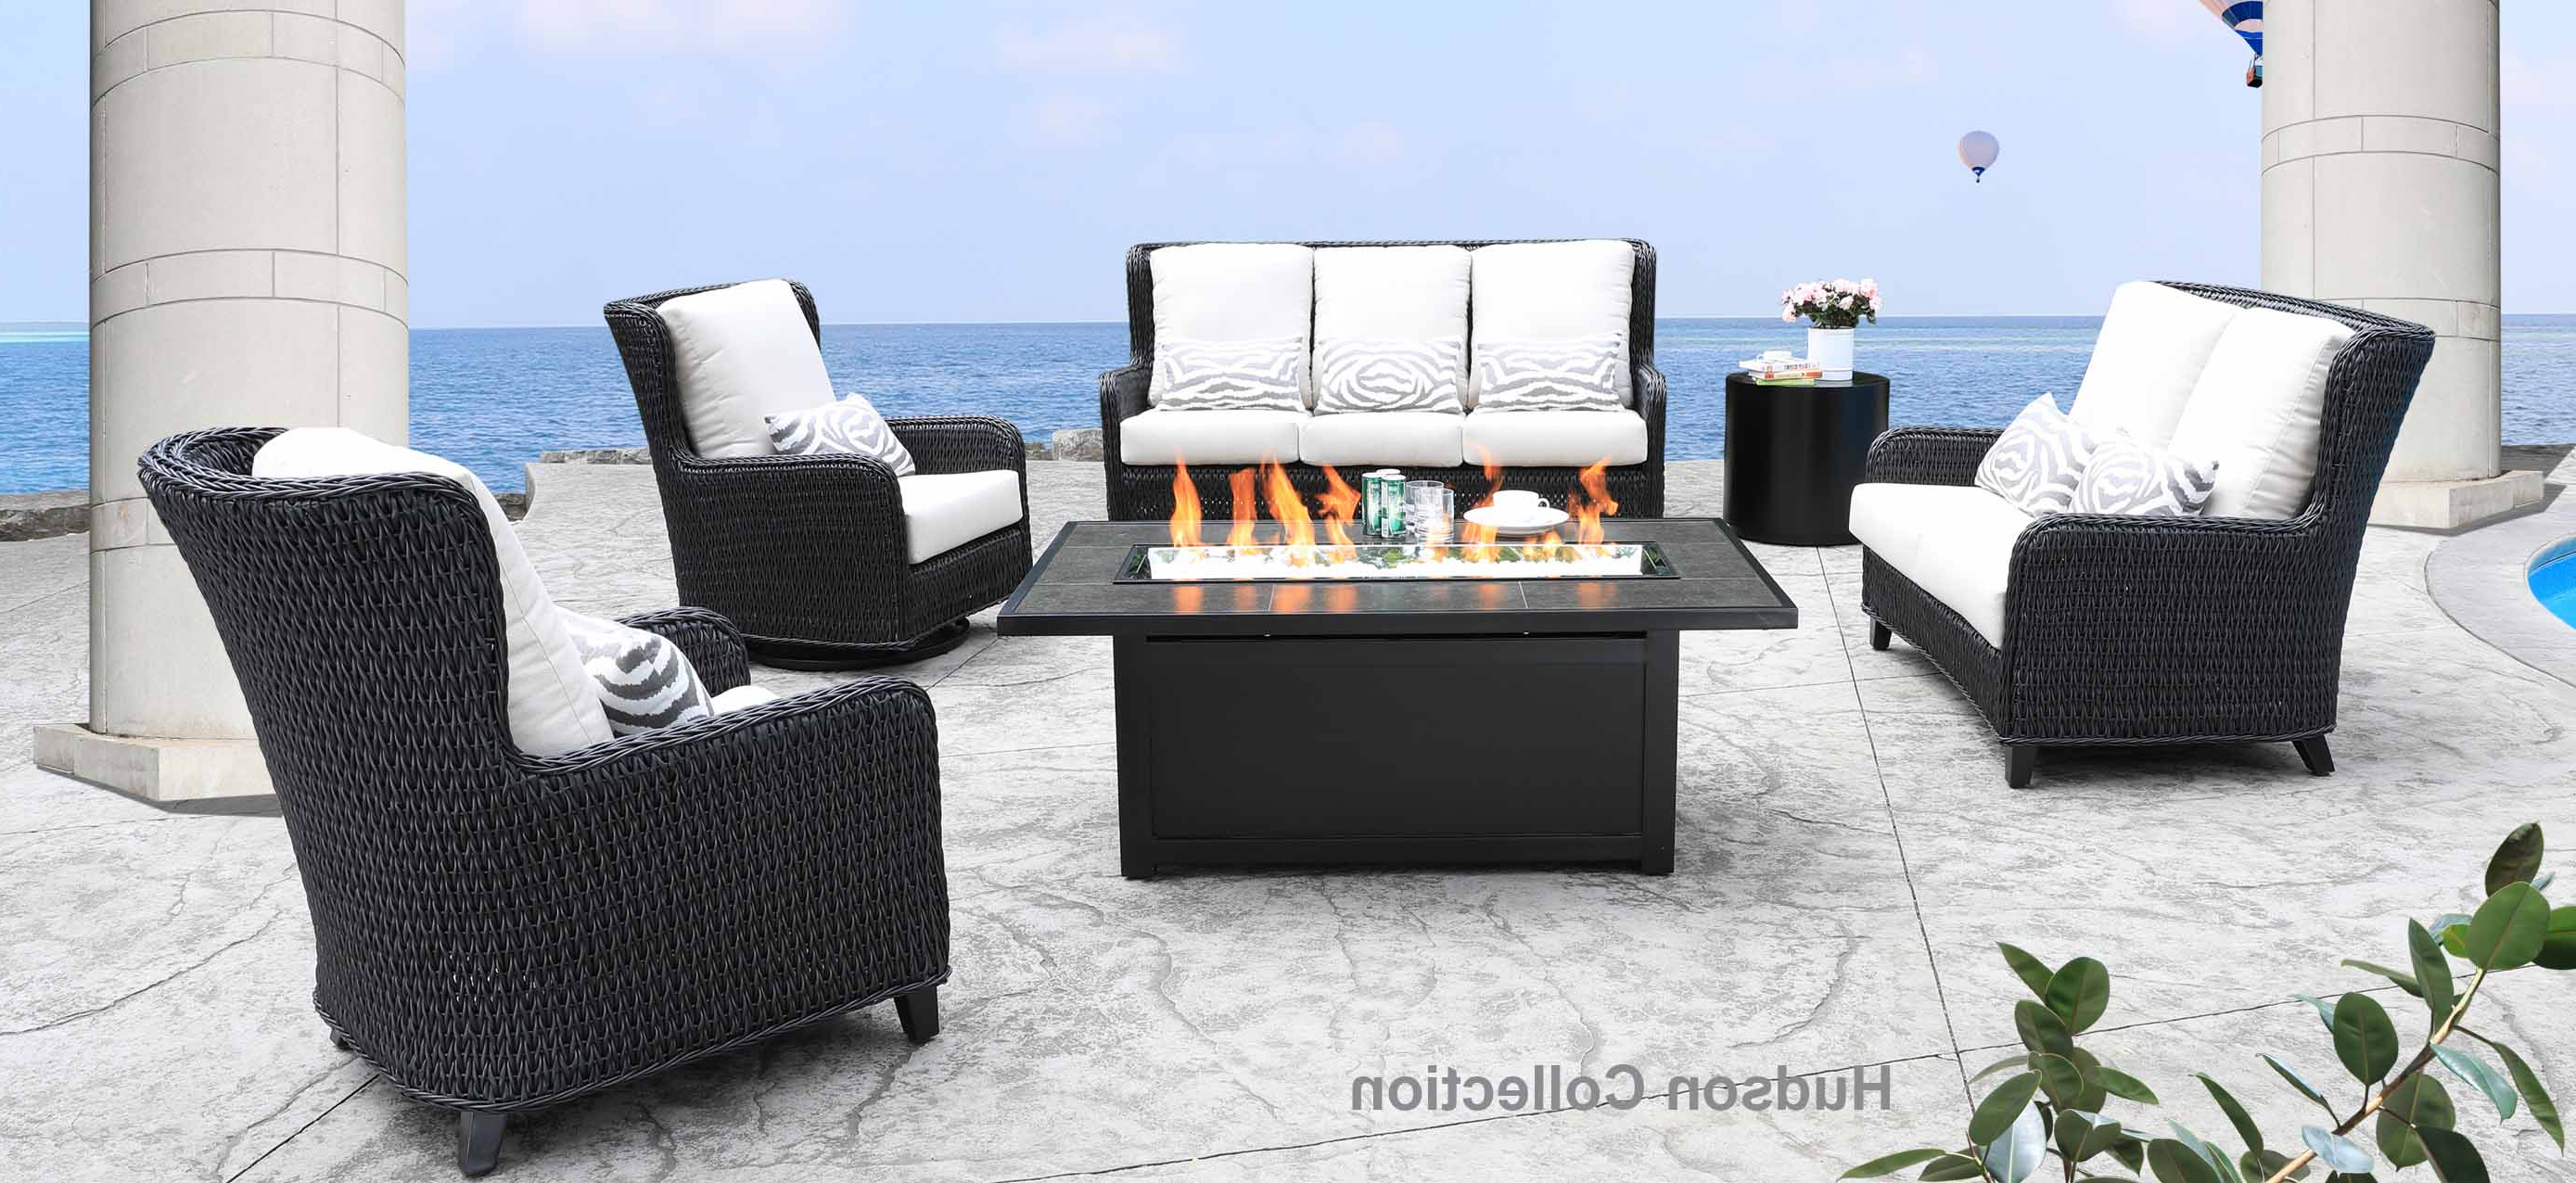 Well Known Extra Wide Outdoor Lounge Chairs Regarding Shop Patio Furniture At Cabanacoast® (View 22 of 25)